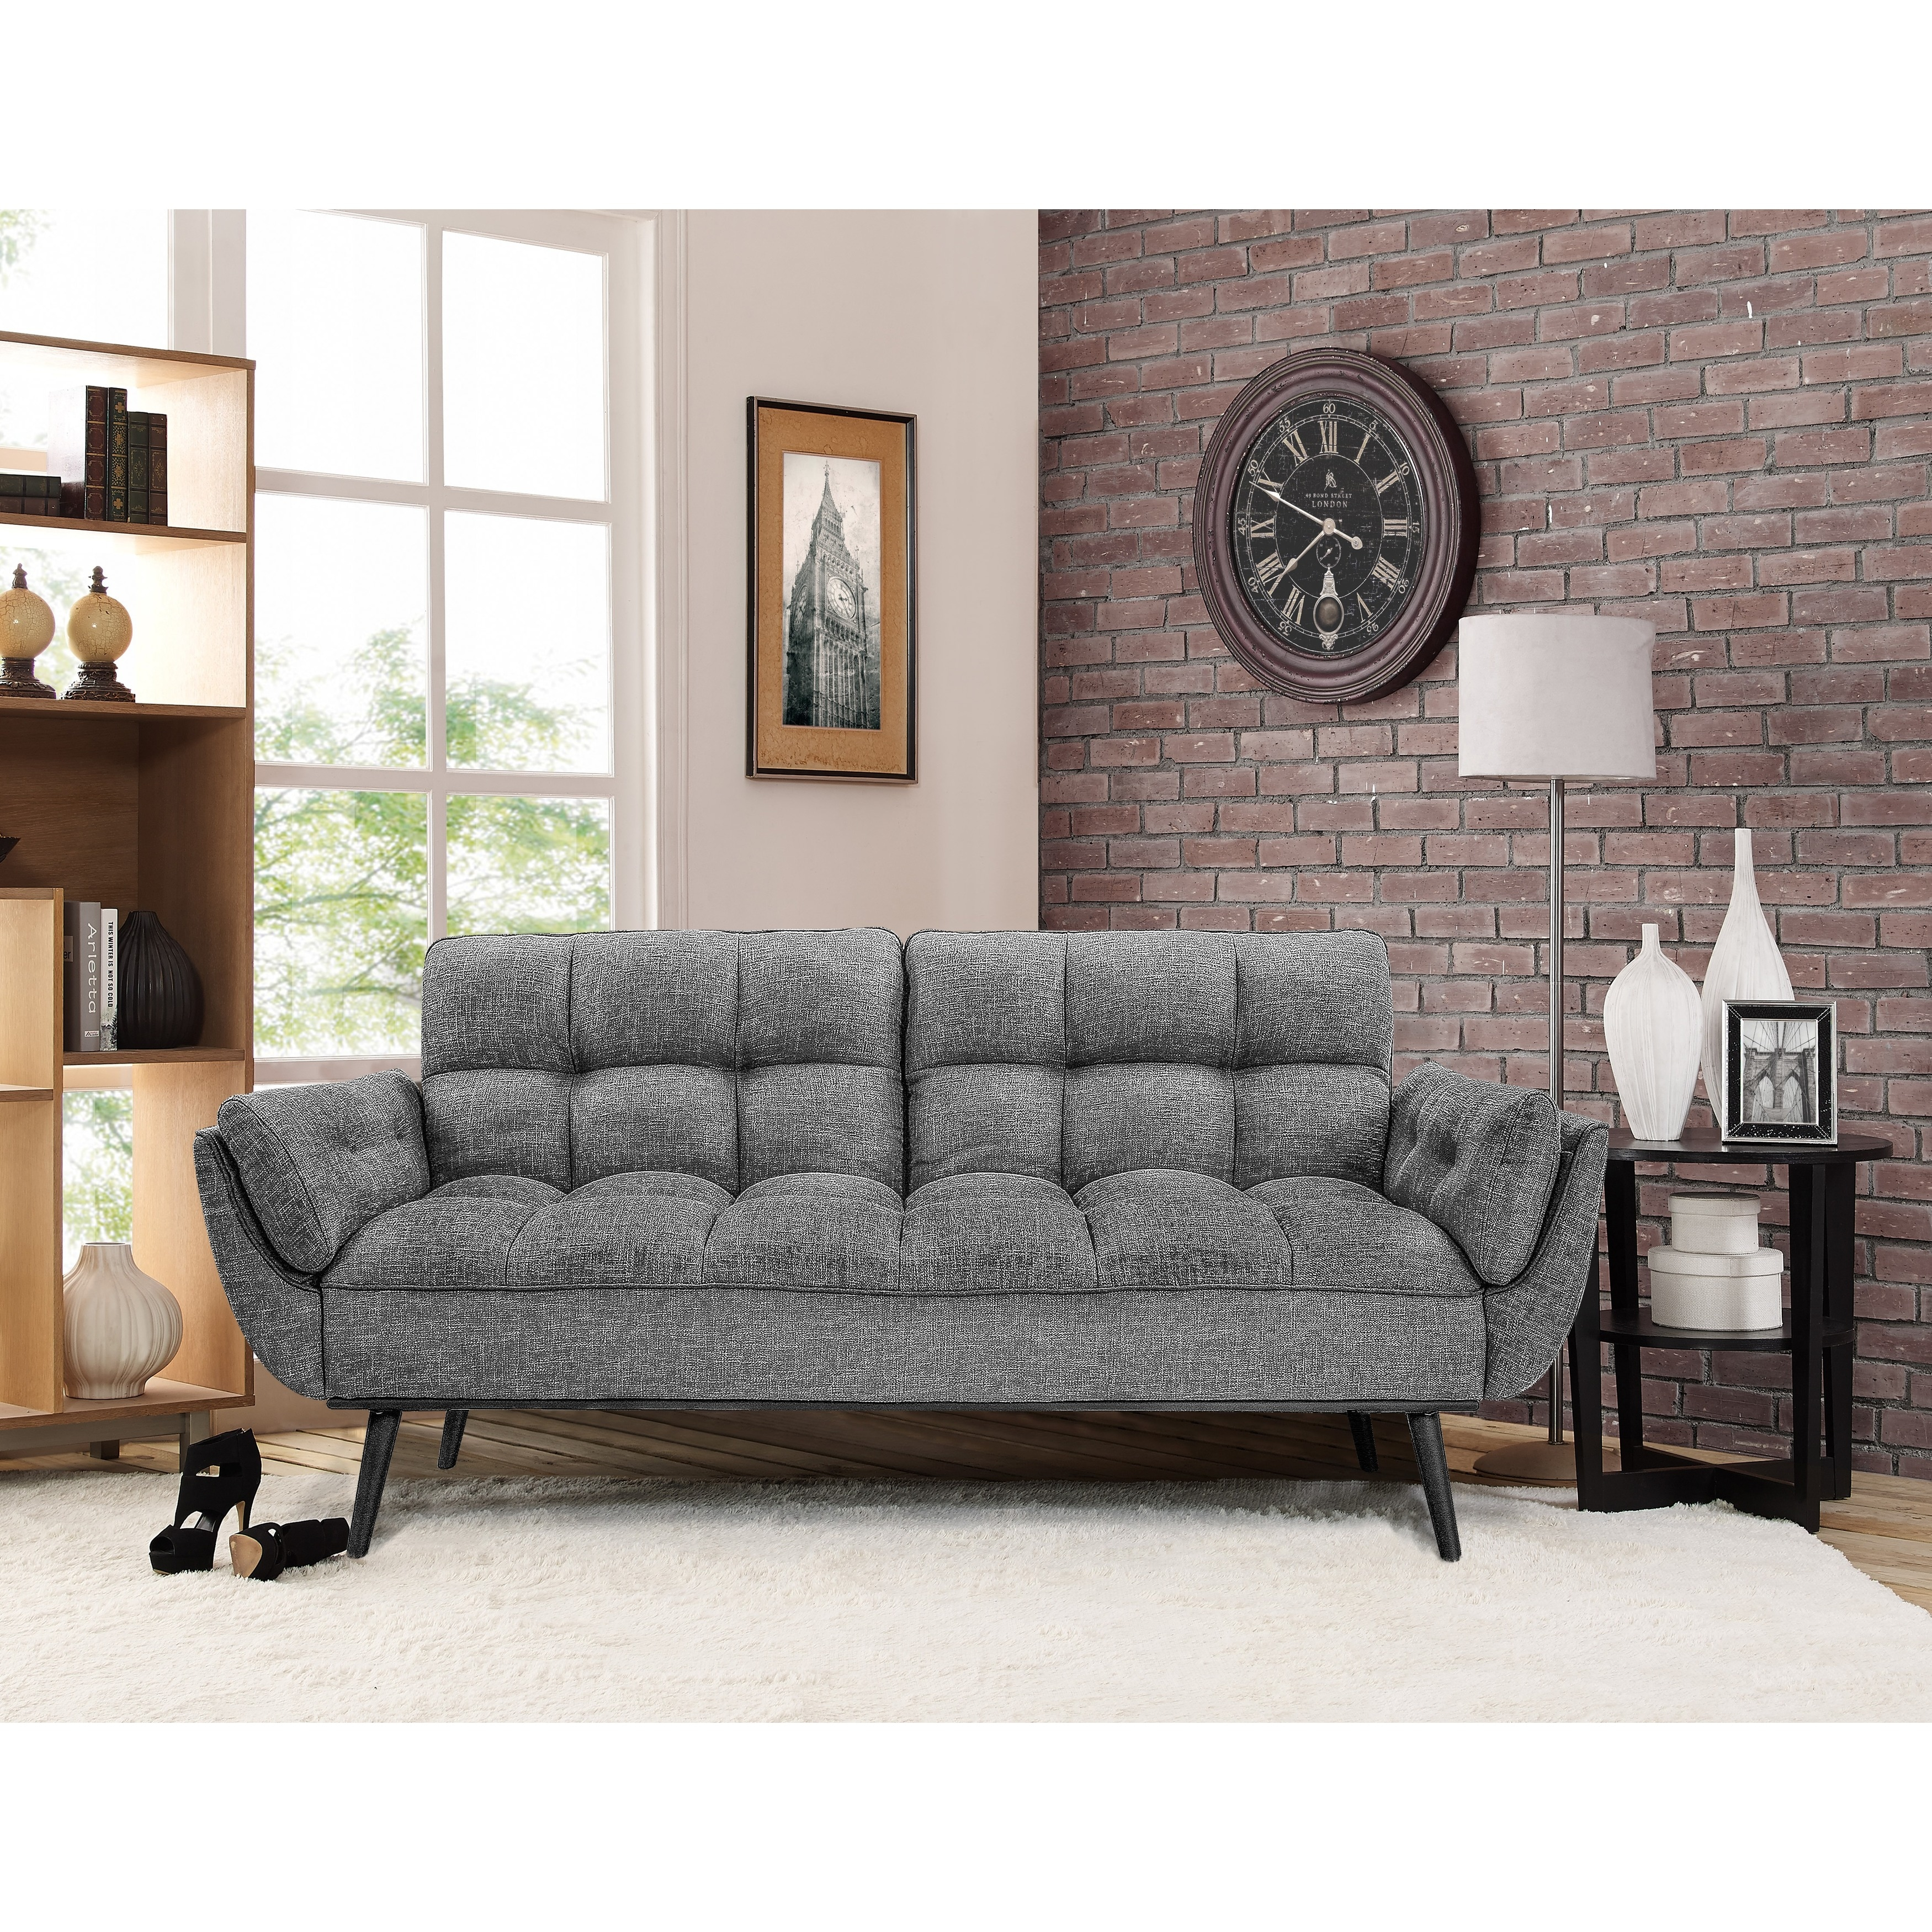 Serta Relax A Lounger Carly Convertible Sofa by Lifestyle...